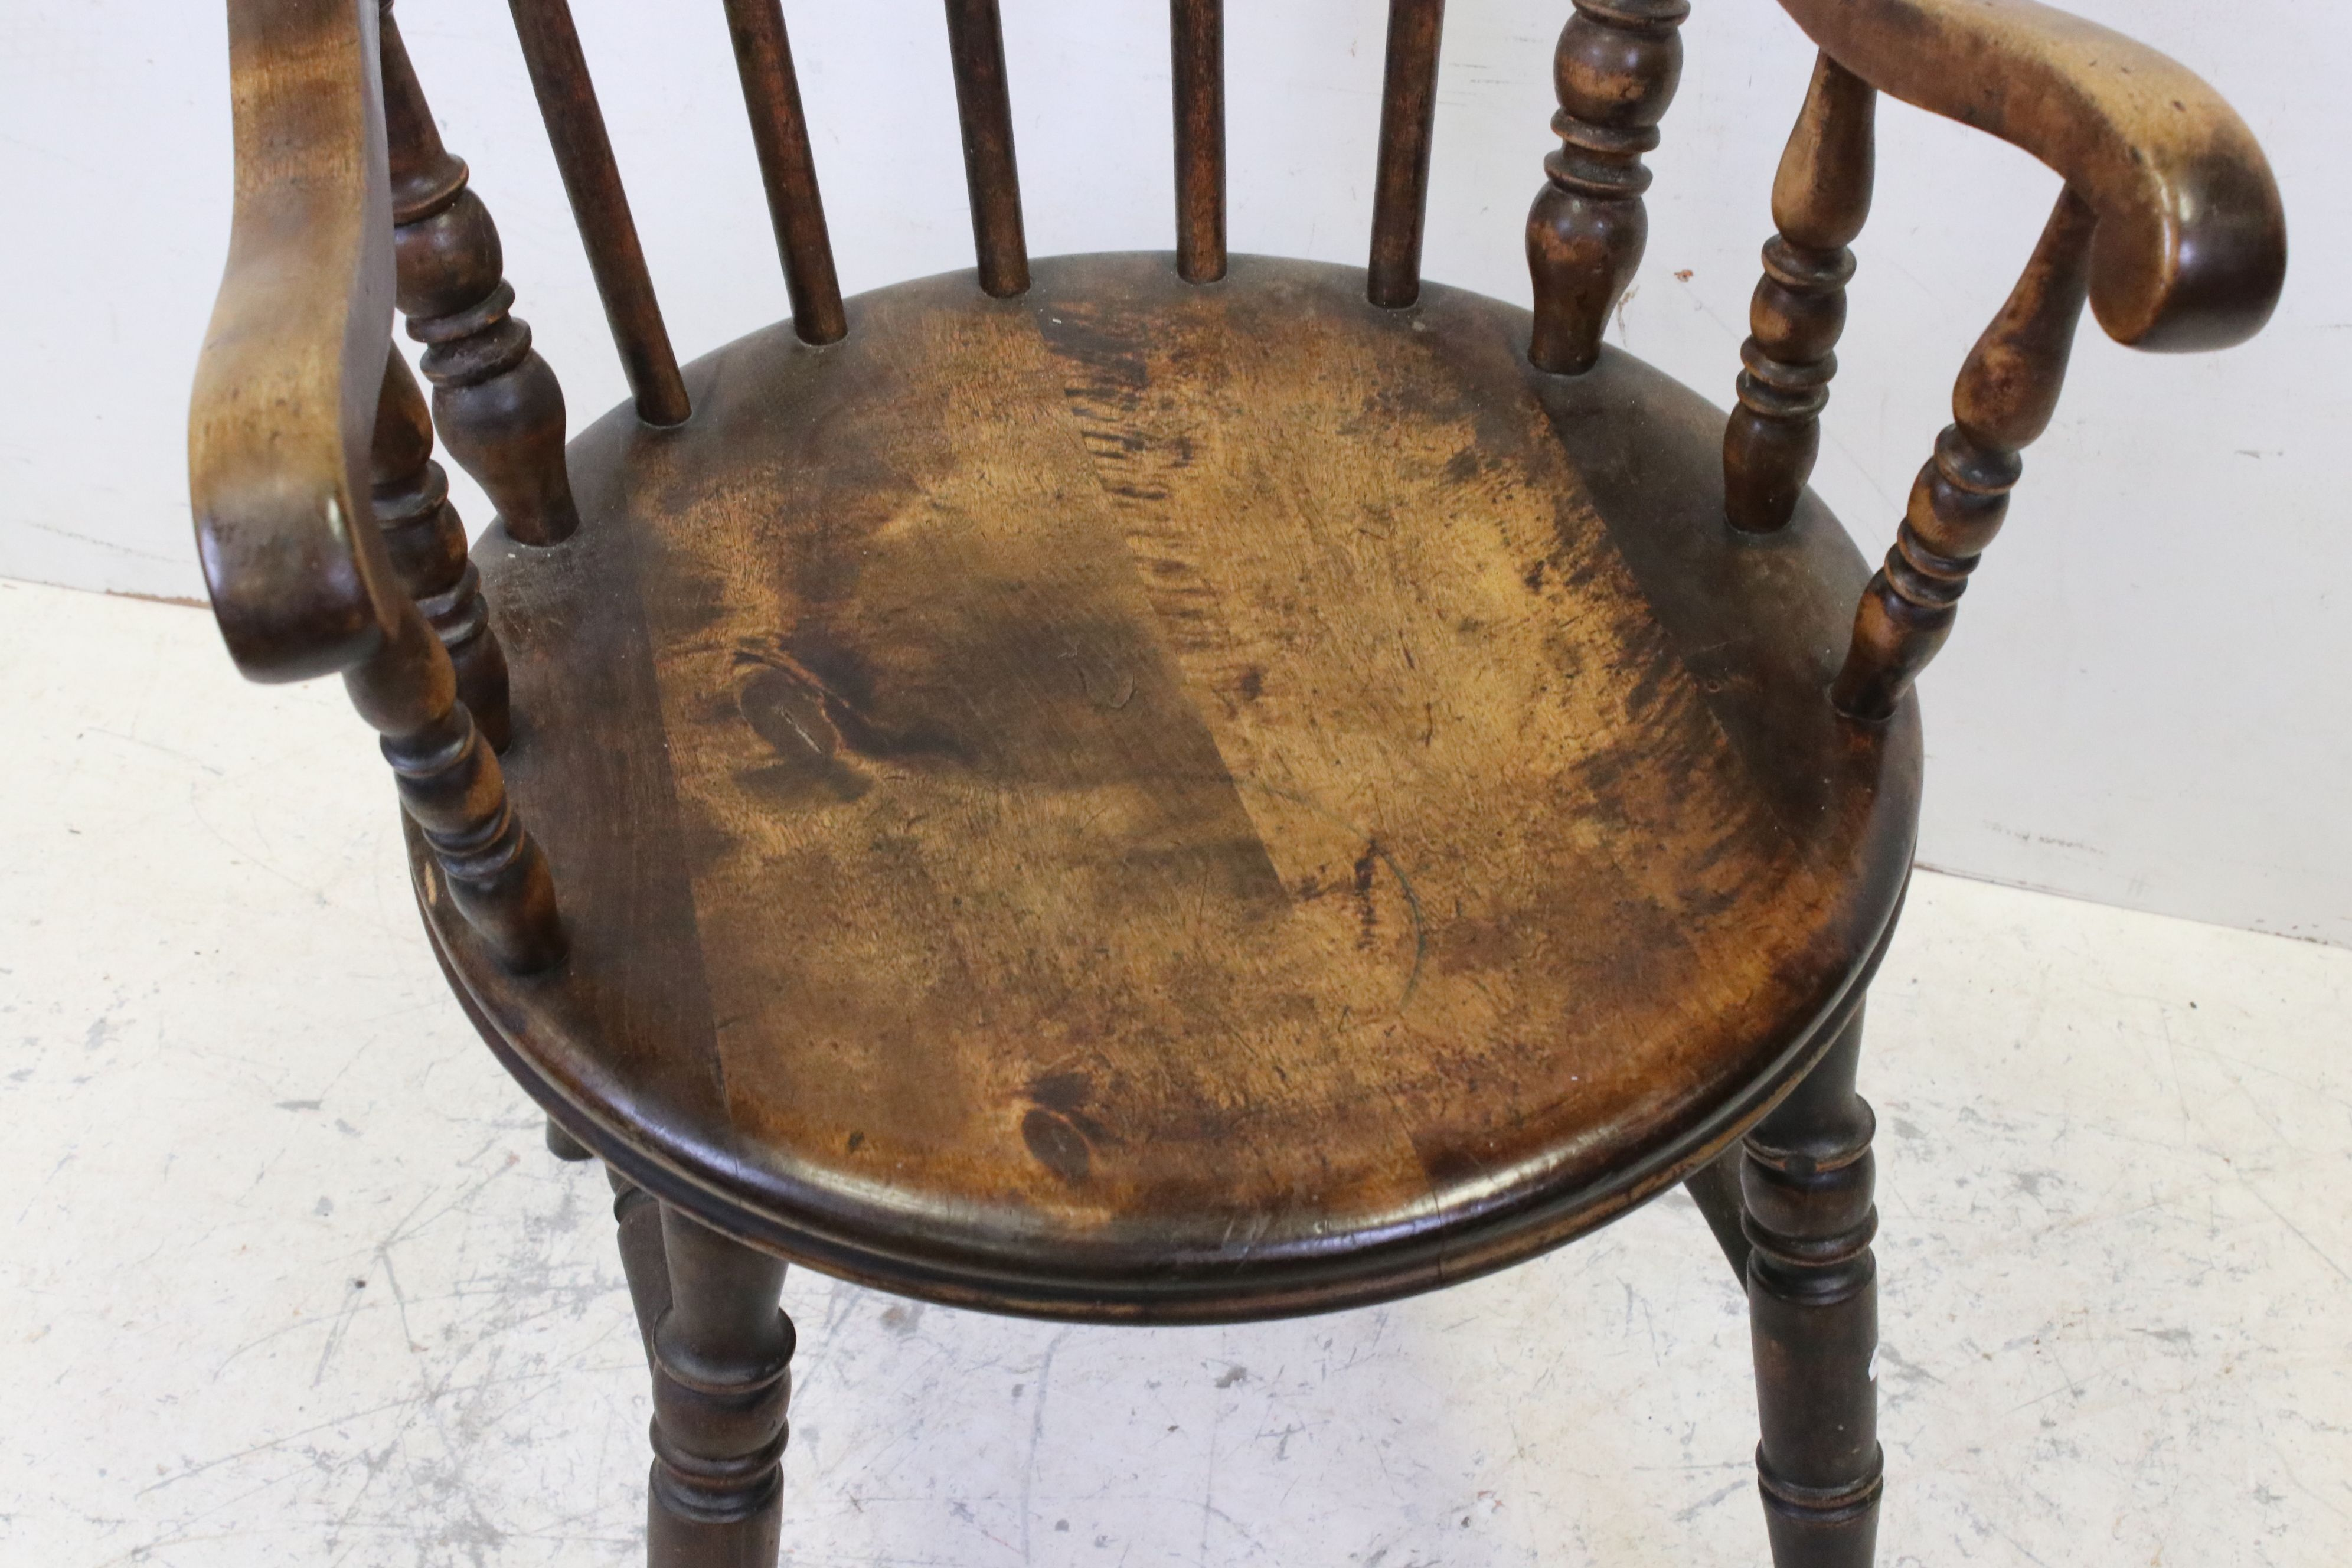 Early 20th century Stickback Elbow Chair with solid circular seat, 88cms high - Image 3 of 3